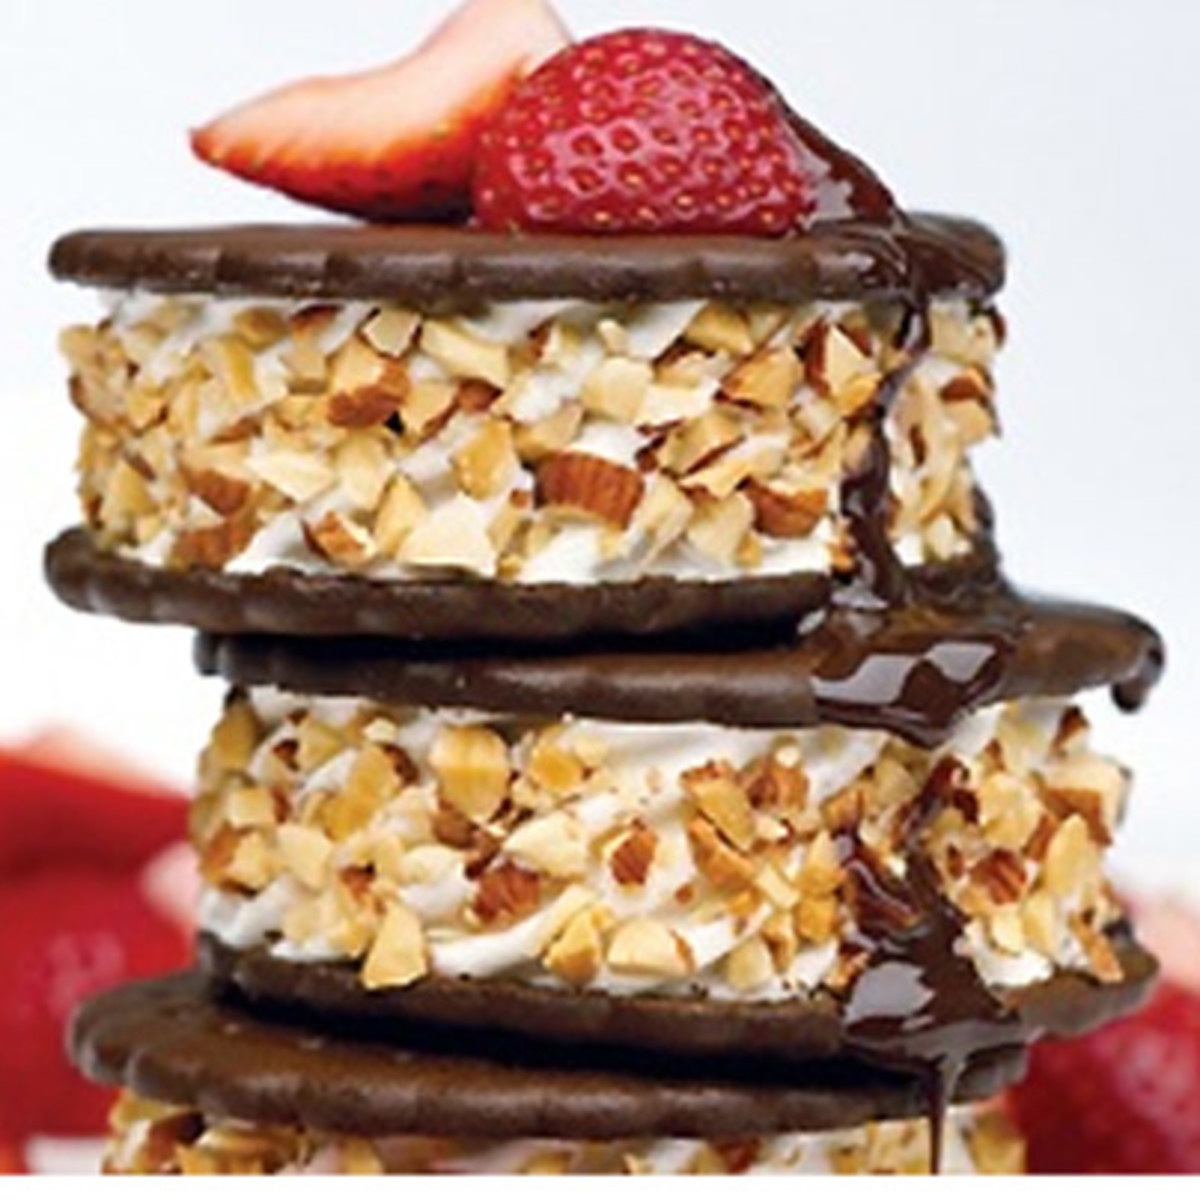 Stacked Ice Cream Sandwiches